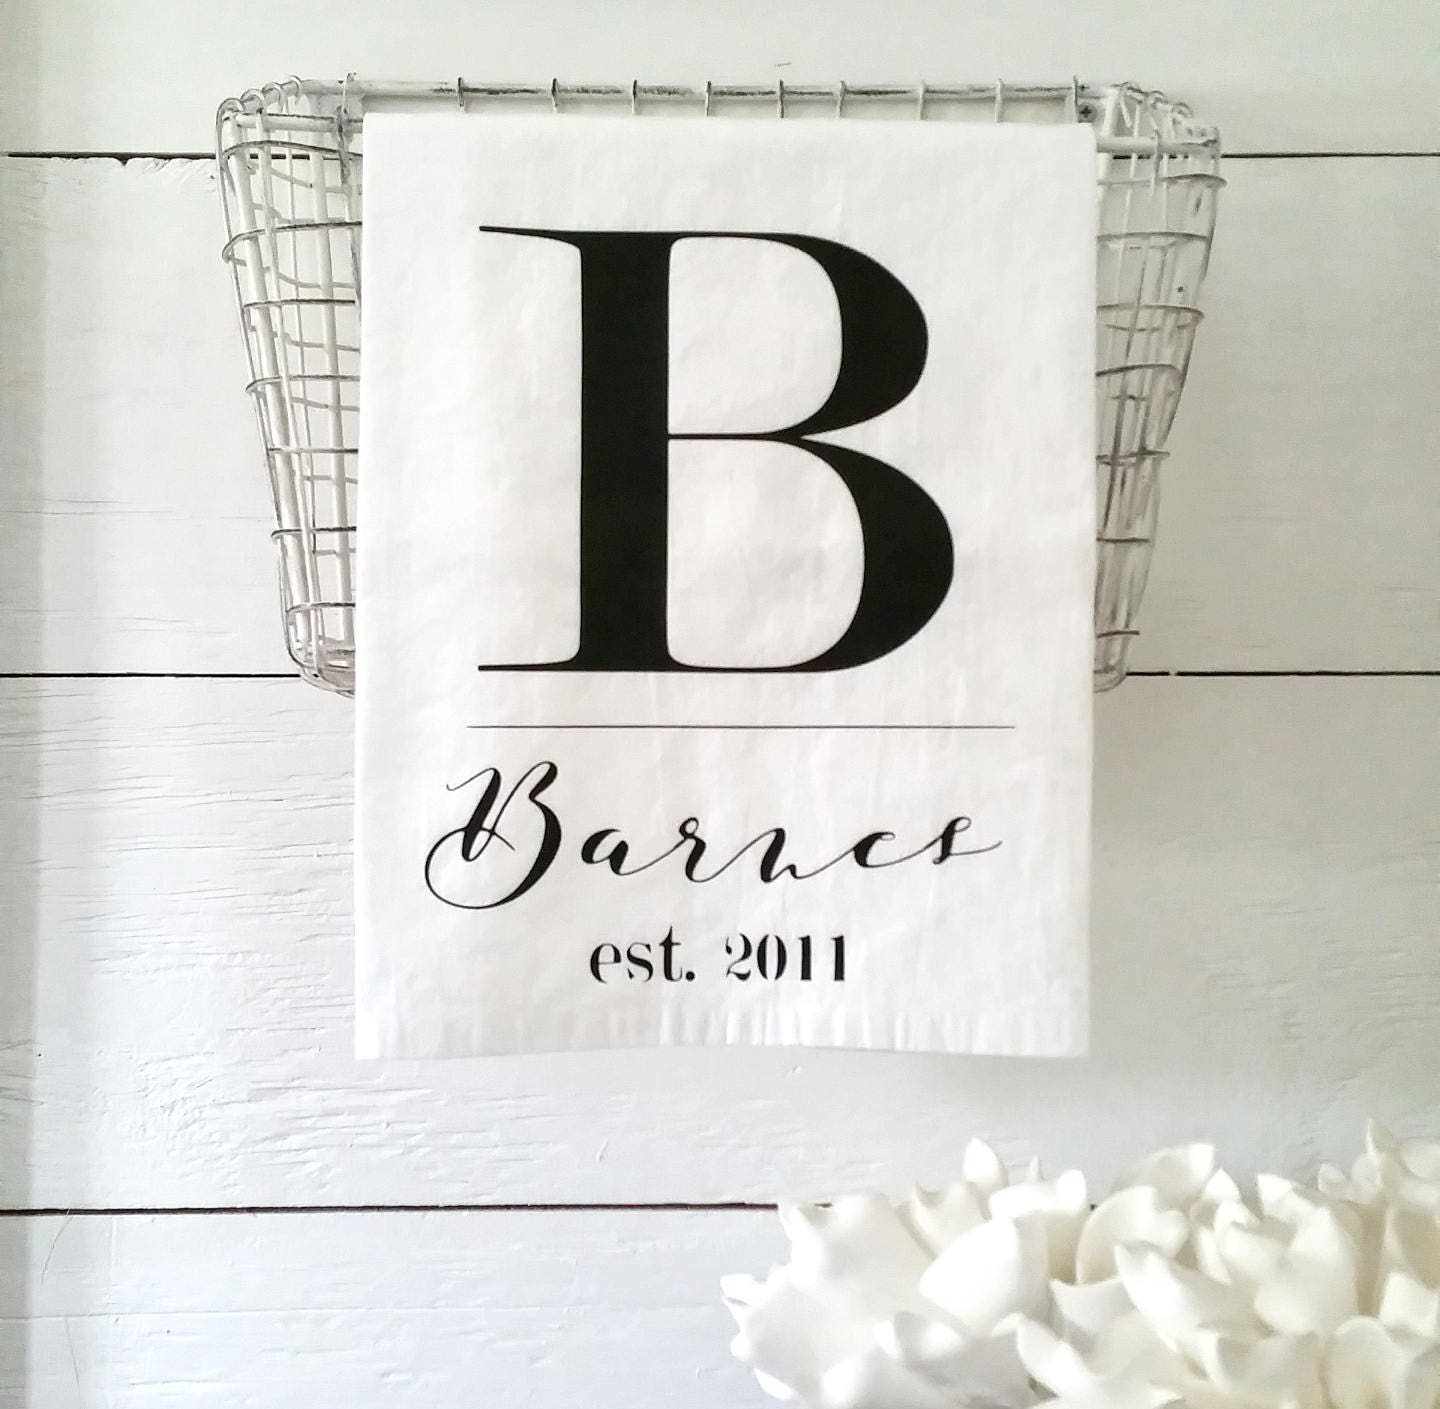 50 Farmhouse Style Gift Ideas From Etsy: Farmhouse Kitchen Decor Personalized Linens Country Home